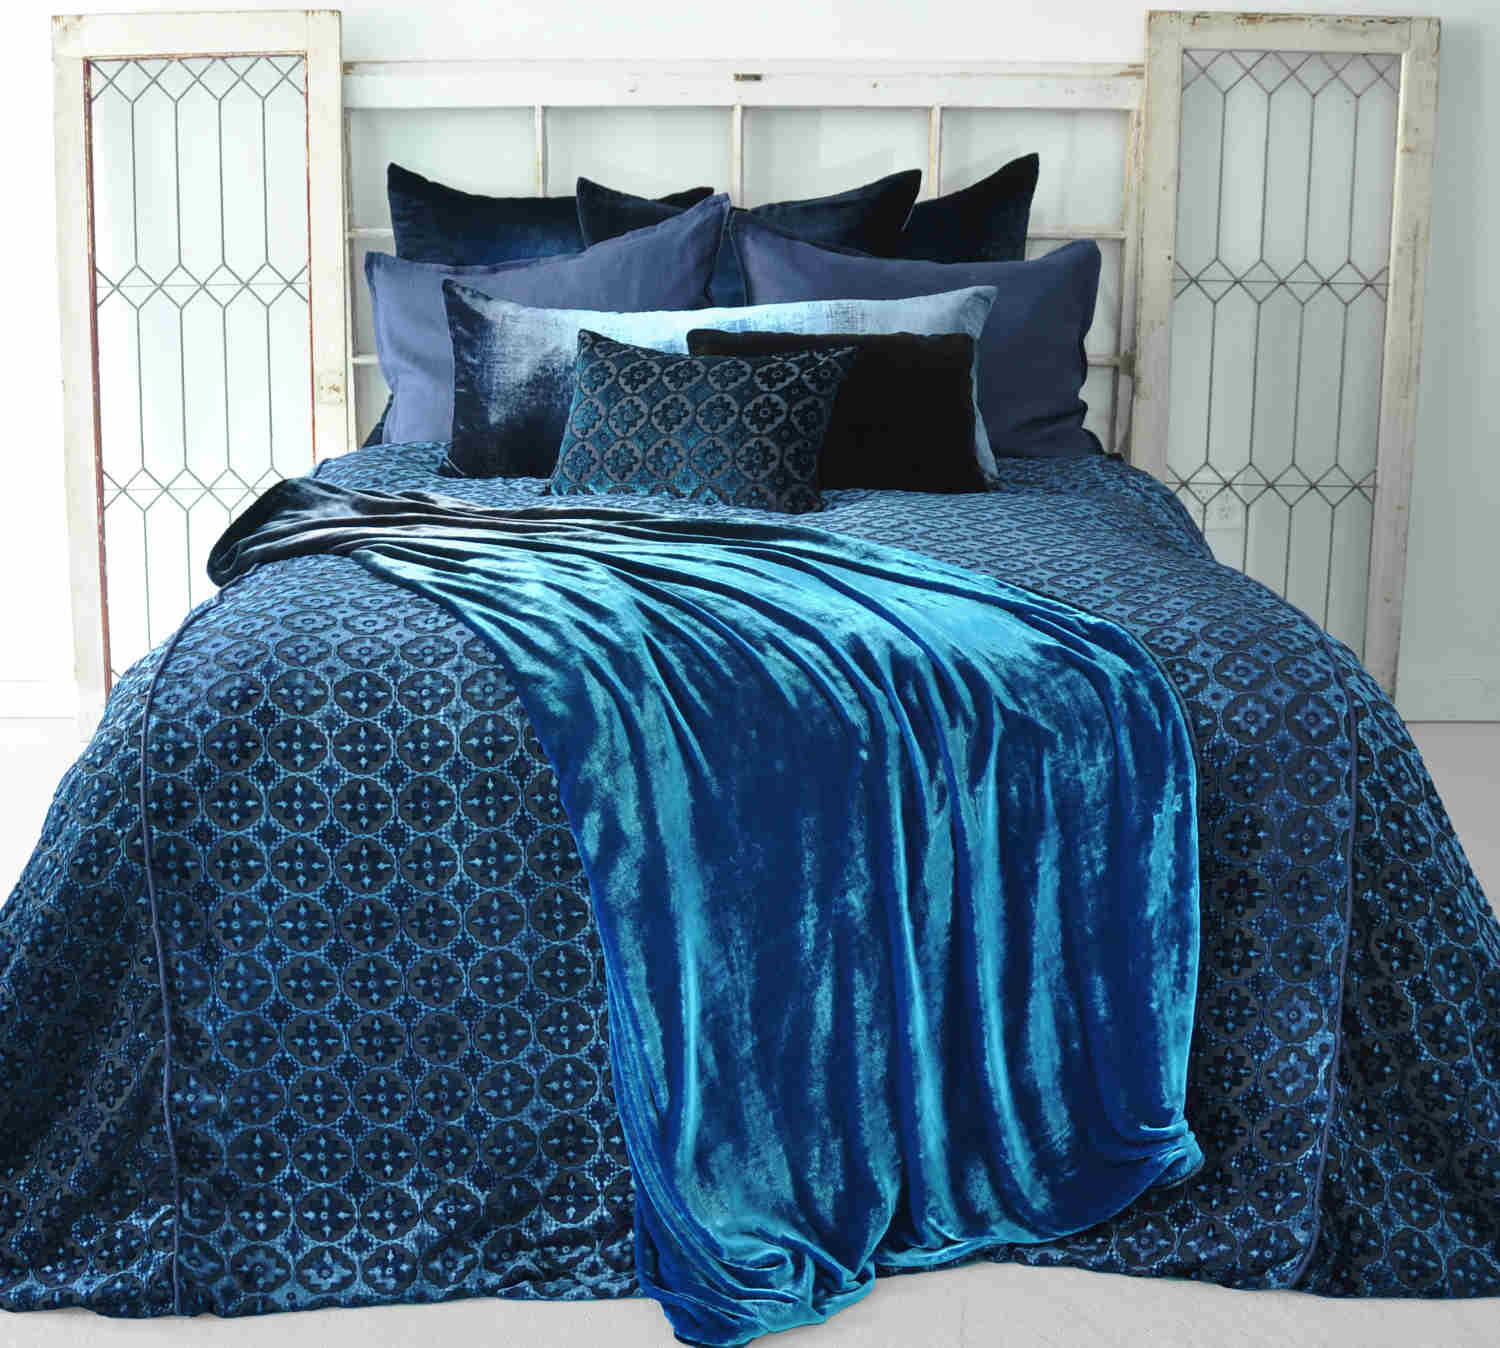 Kevin Obrien Studio Bedding Casablanca Cobalt Black Bedding